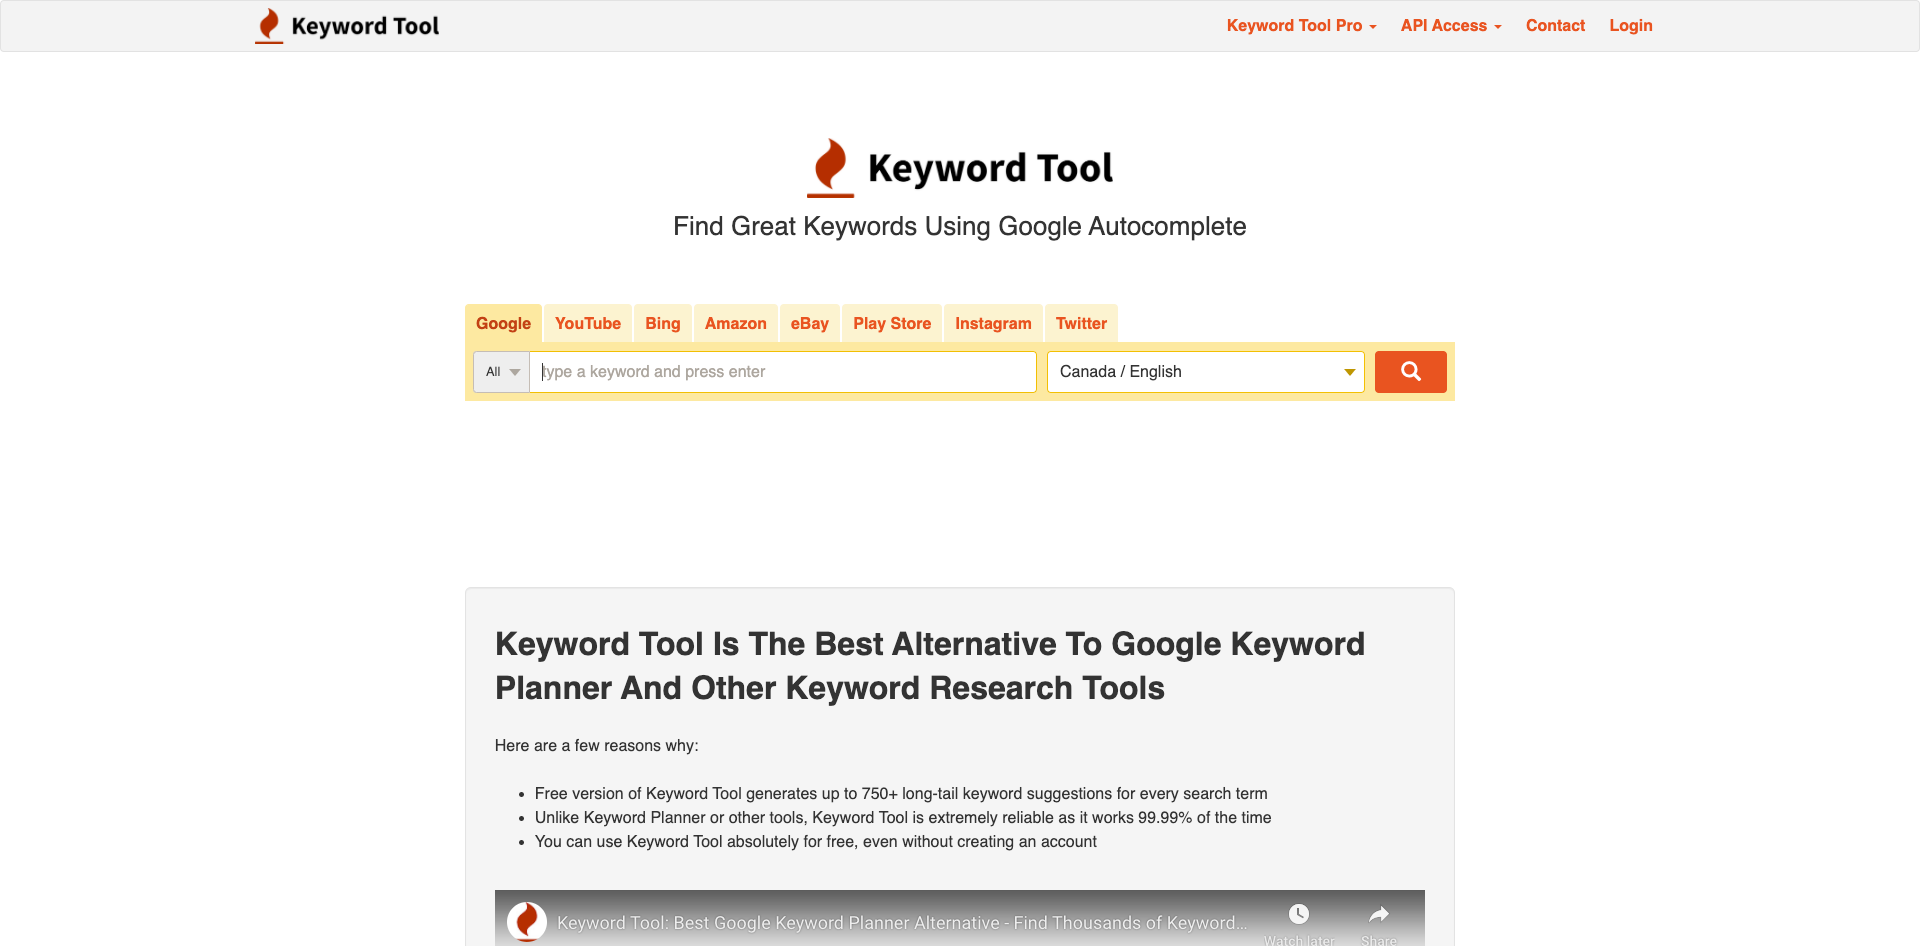 Find Great Keywords Using Google Autocomplete